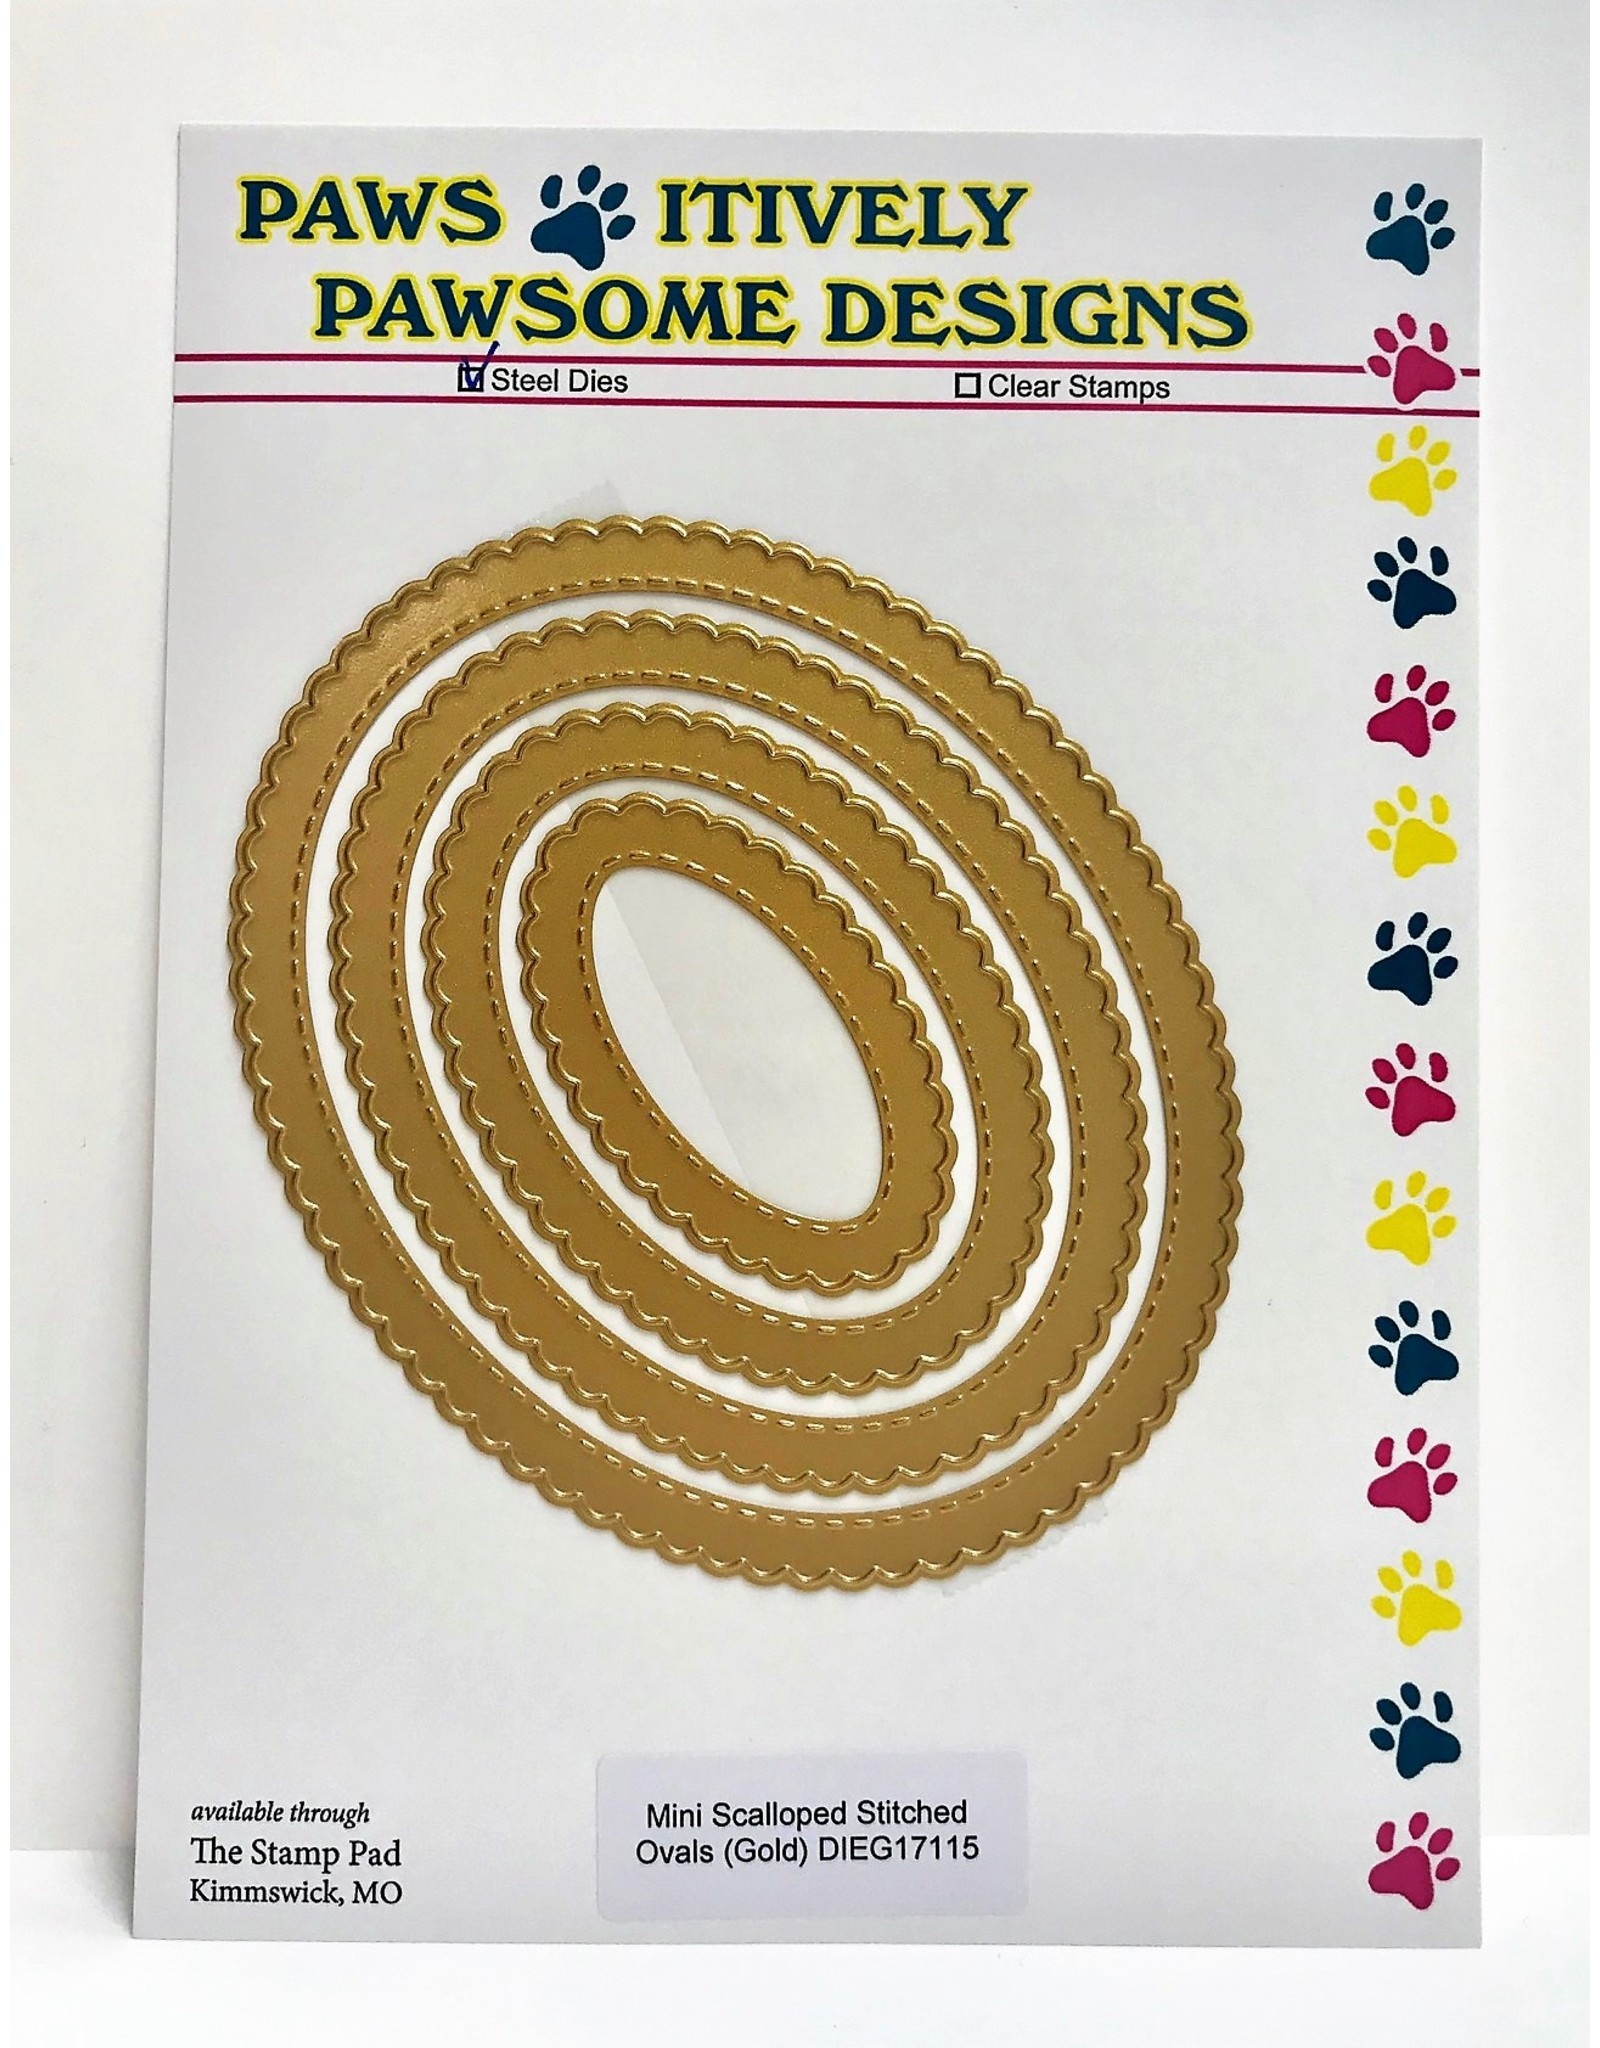 Paws-Itively Pawsome Designs Mini Scalloped Stitched Ovals (Gold) - Die